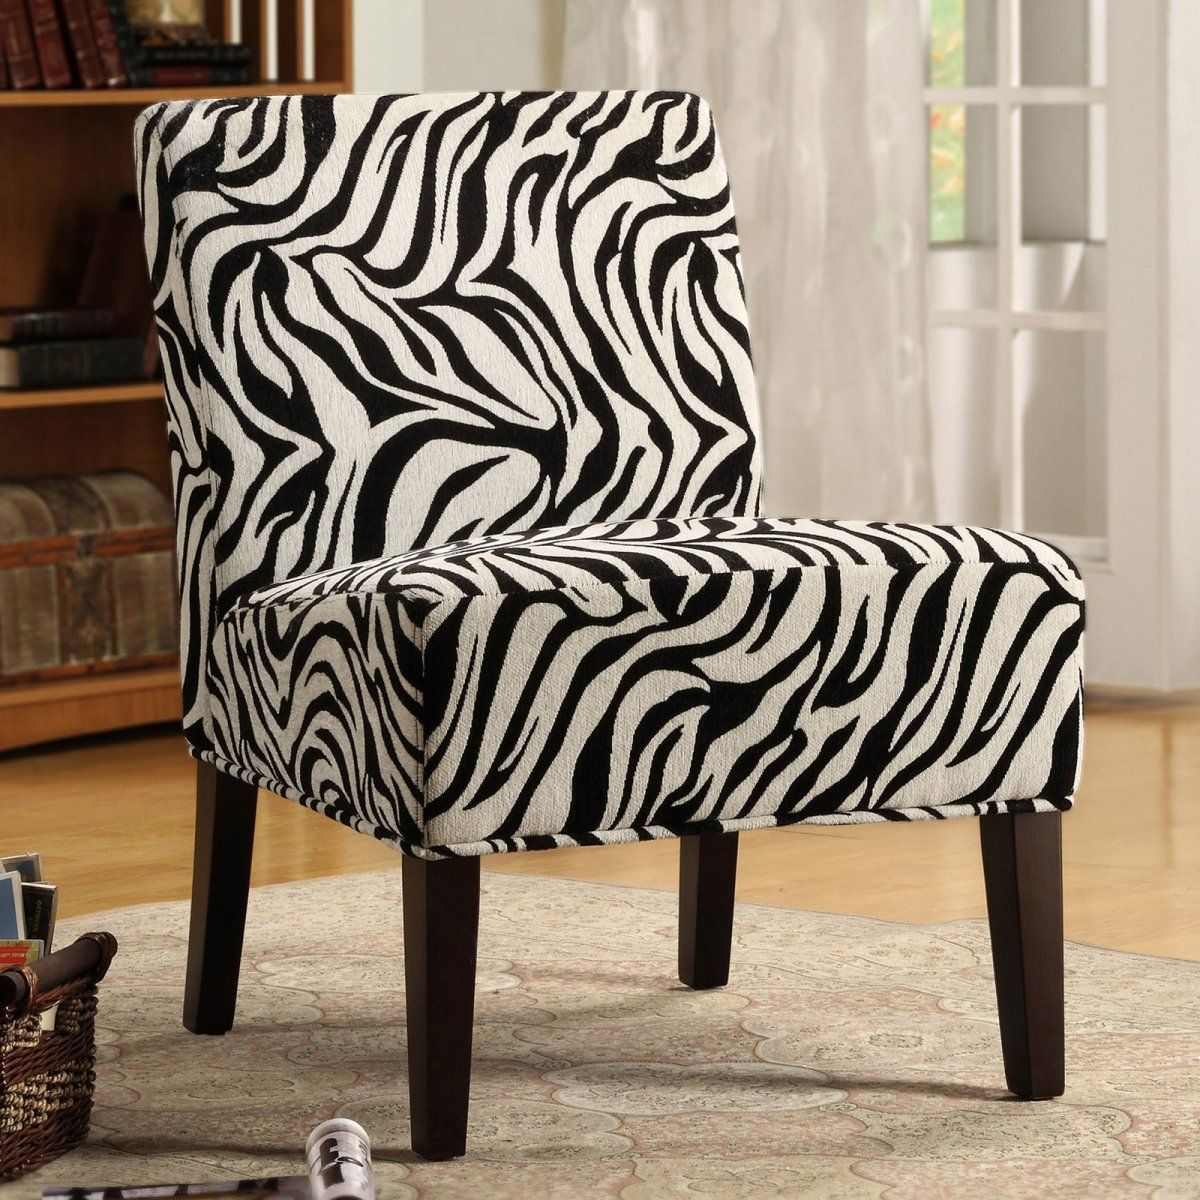 Best Bree Fabric Accent Chair Zebra 179 99 Fabric Accent 400 x 300